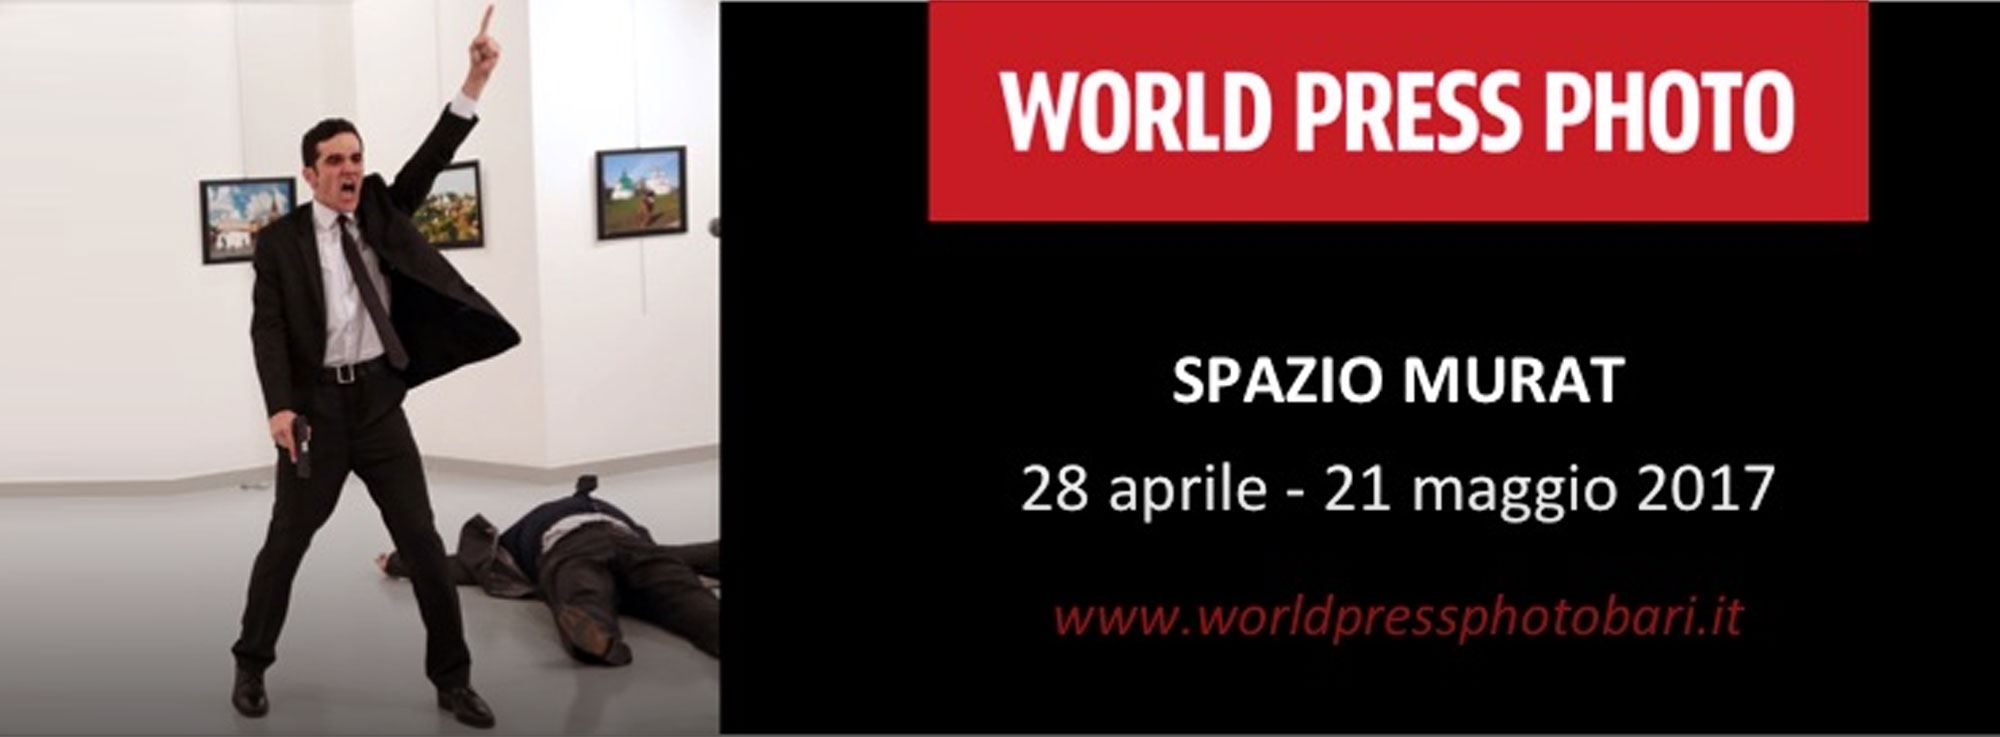 Bari: World Press Photo 2017